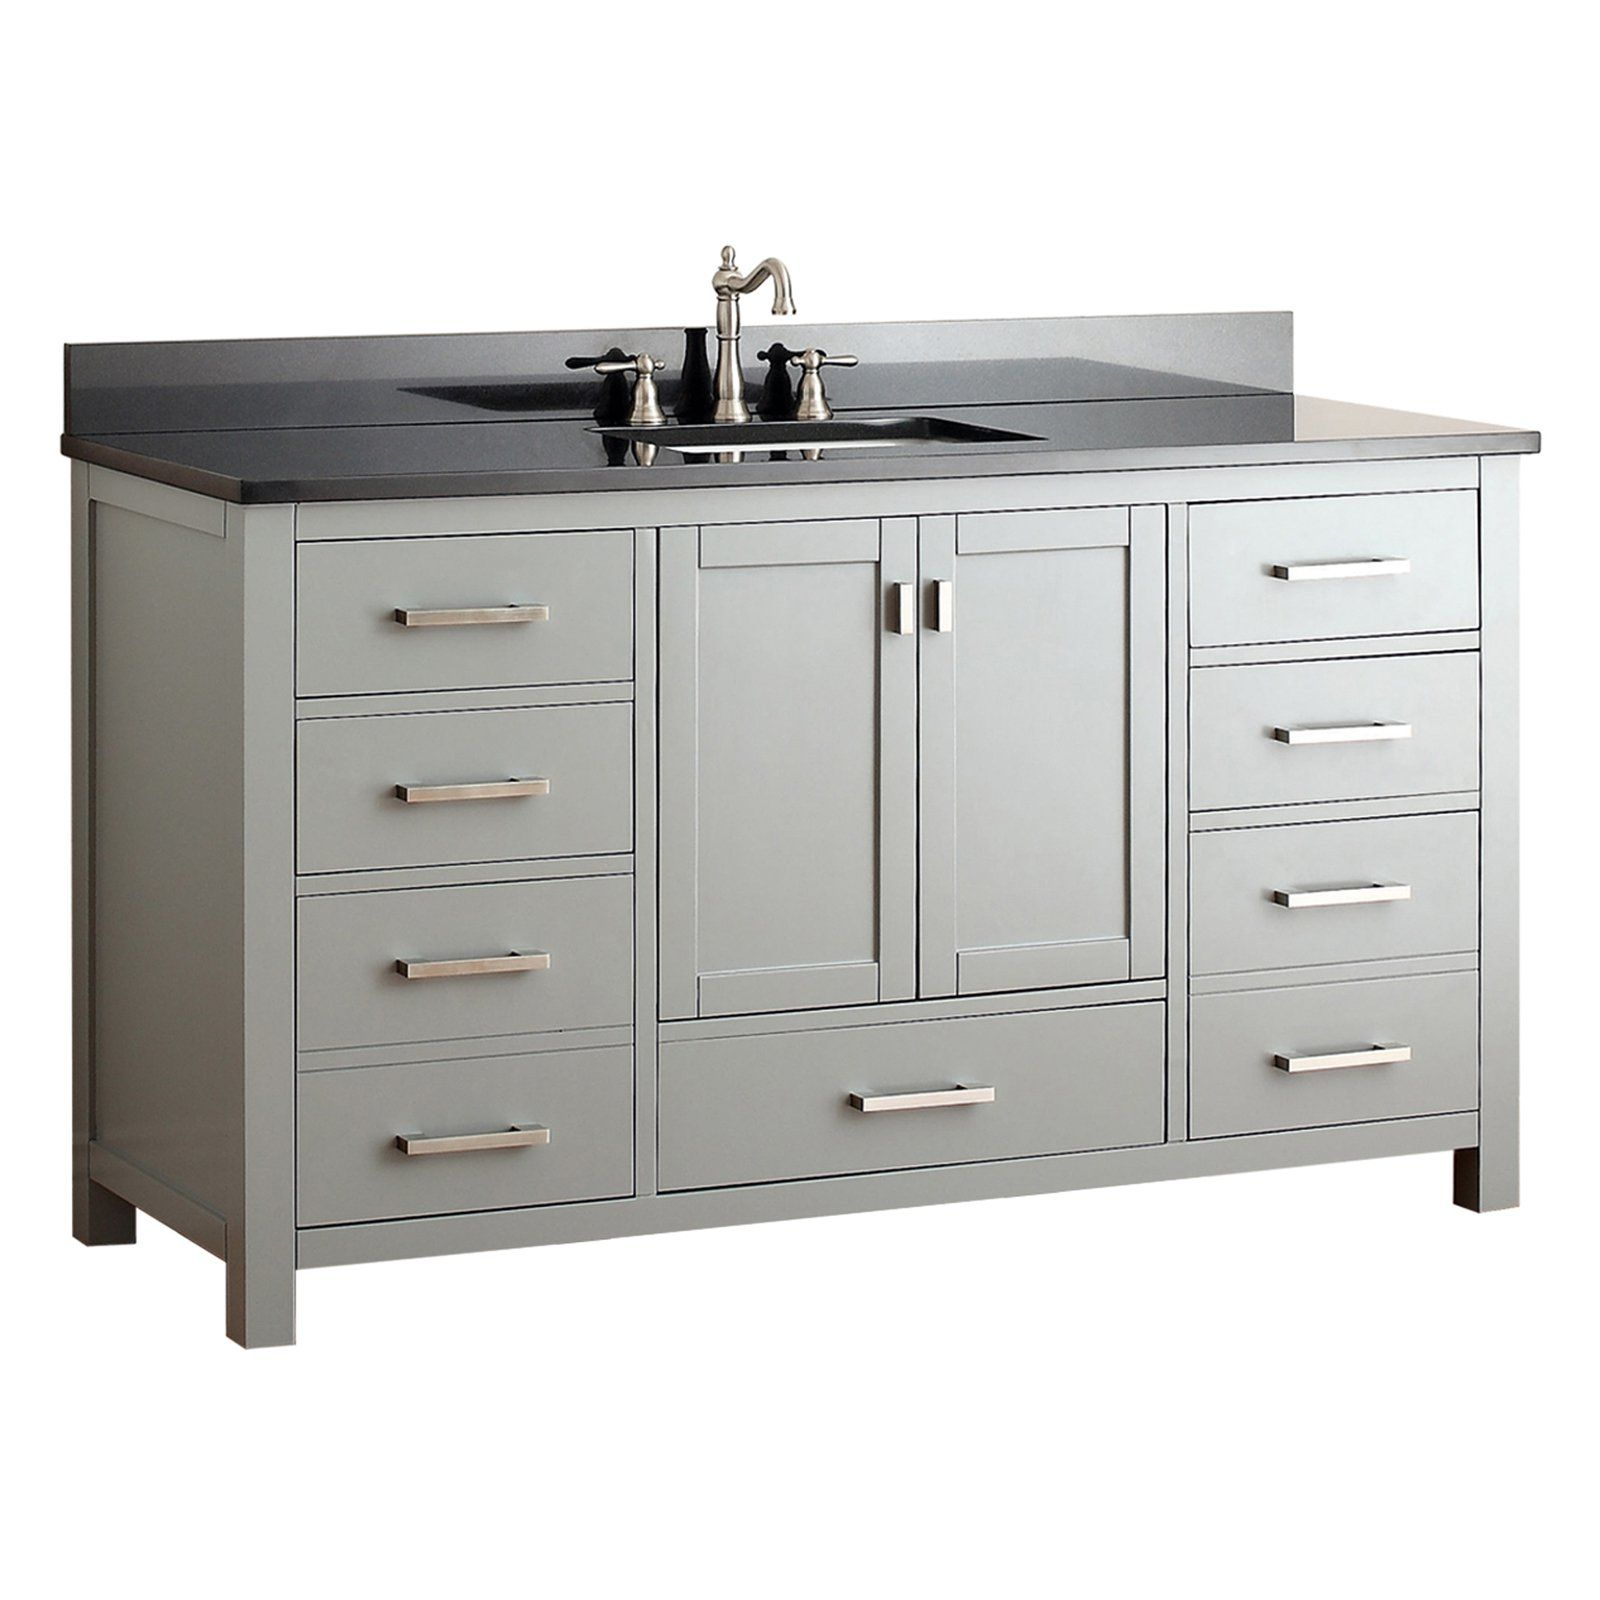 Avanity Modero Vs60 Cg Modero 60 In Single Bathroom Vanity Without Top Products In 2019 Single Bathroom Vanity Single Sink Bathroom Vanity Bathroom Vanity Base